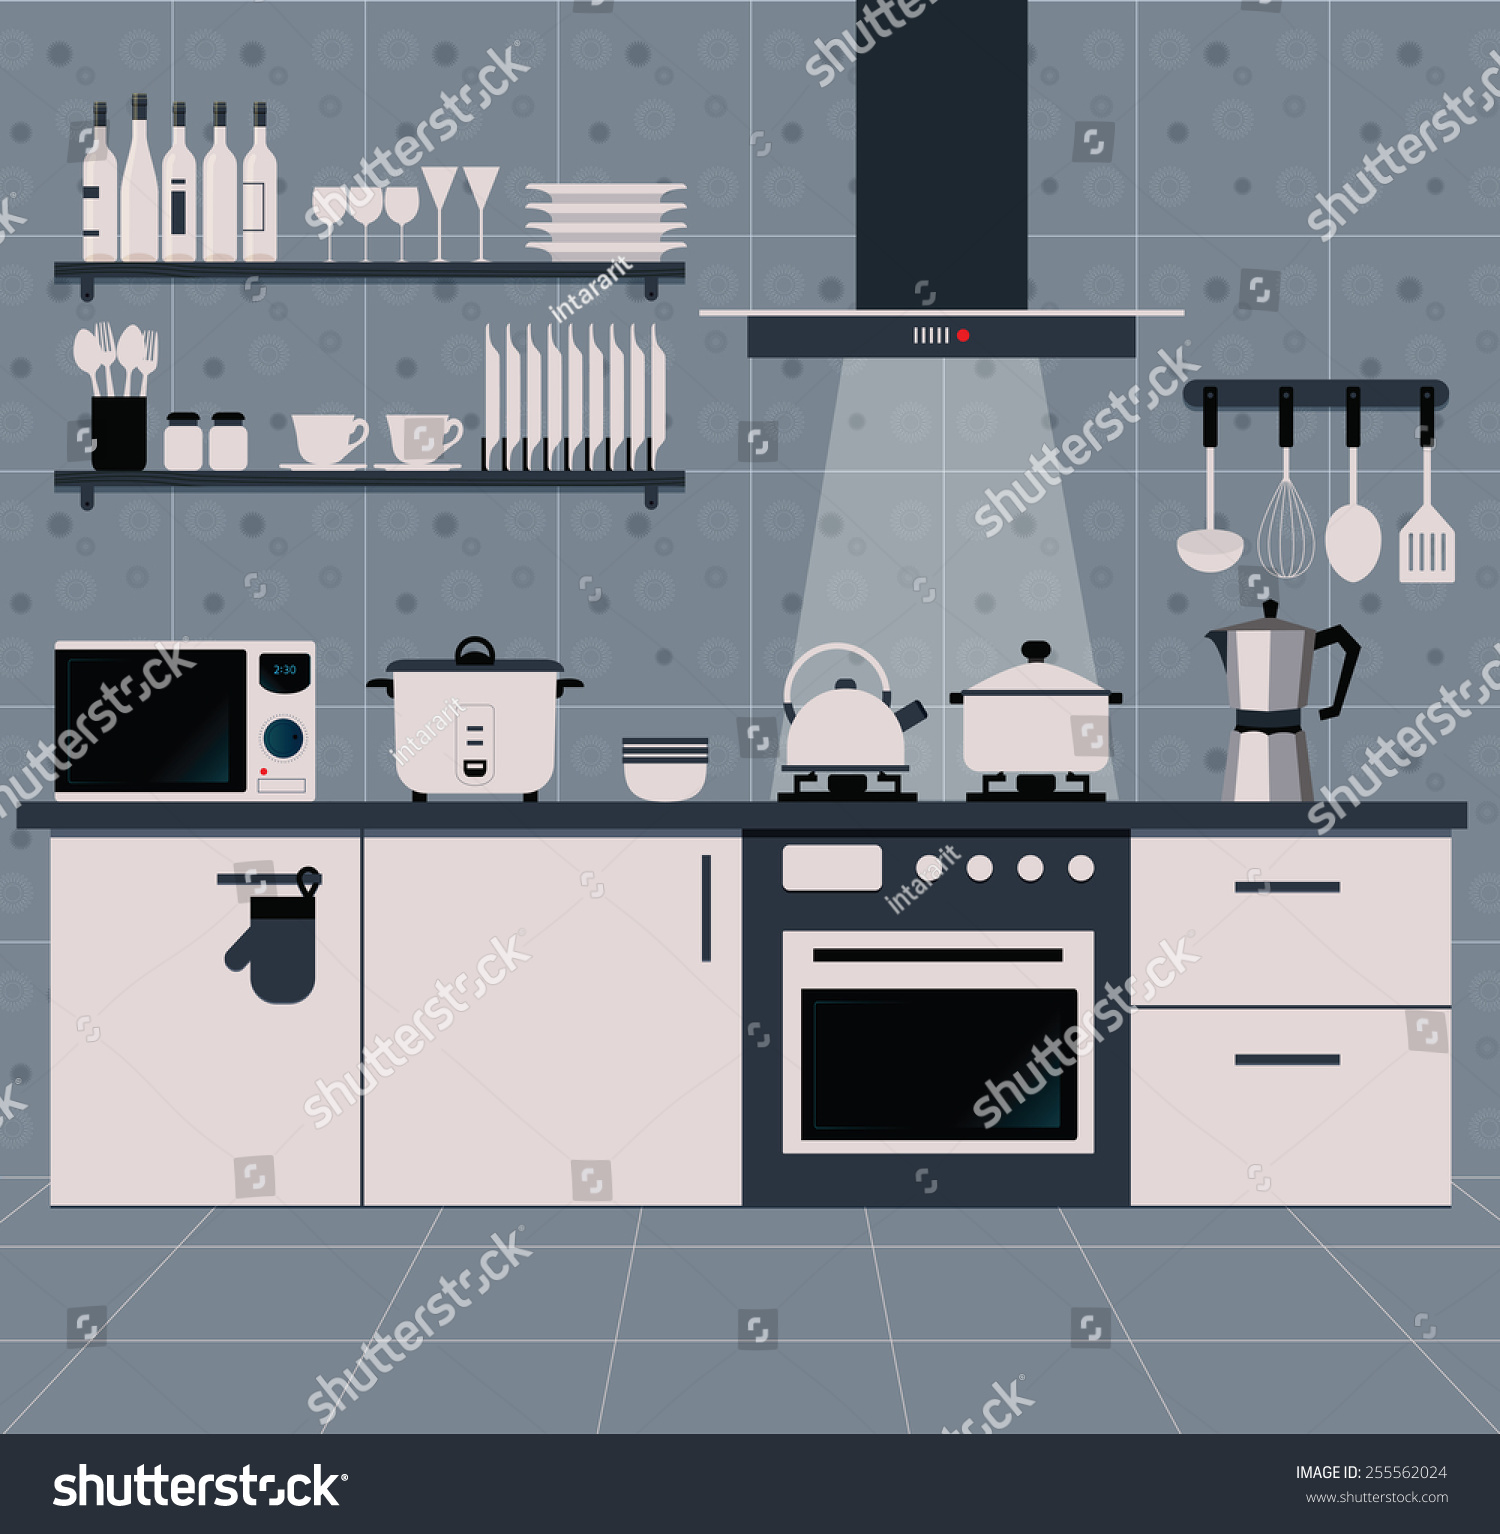 Interior Kitchen Cooking Equipment Patterned Tiles Stock Vector ...